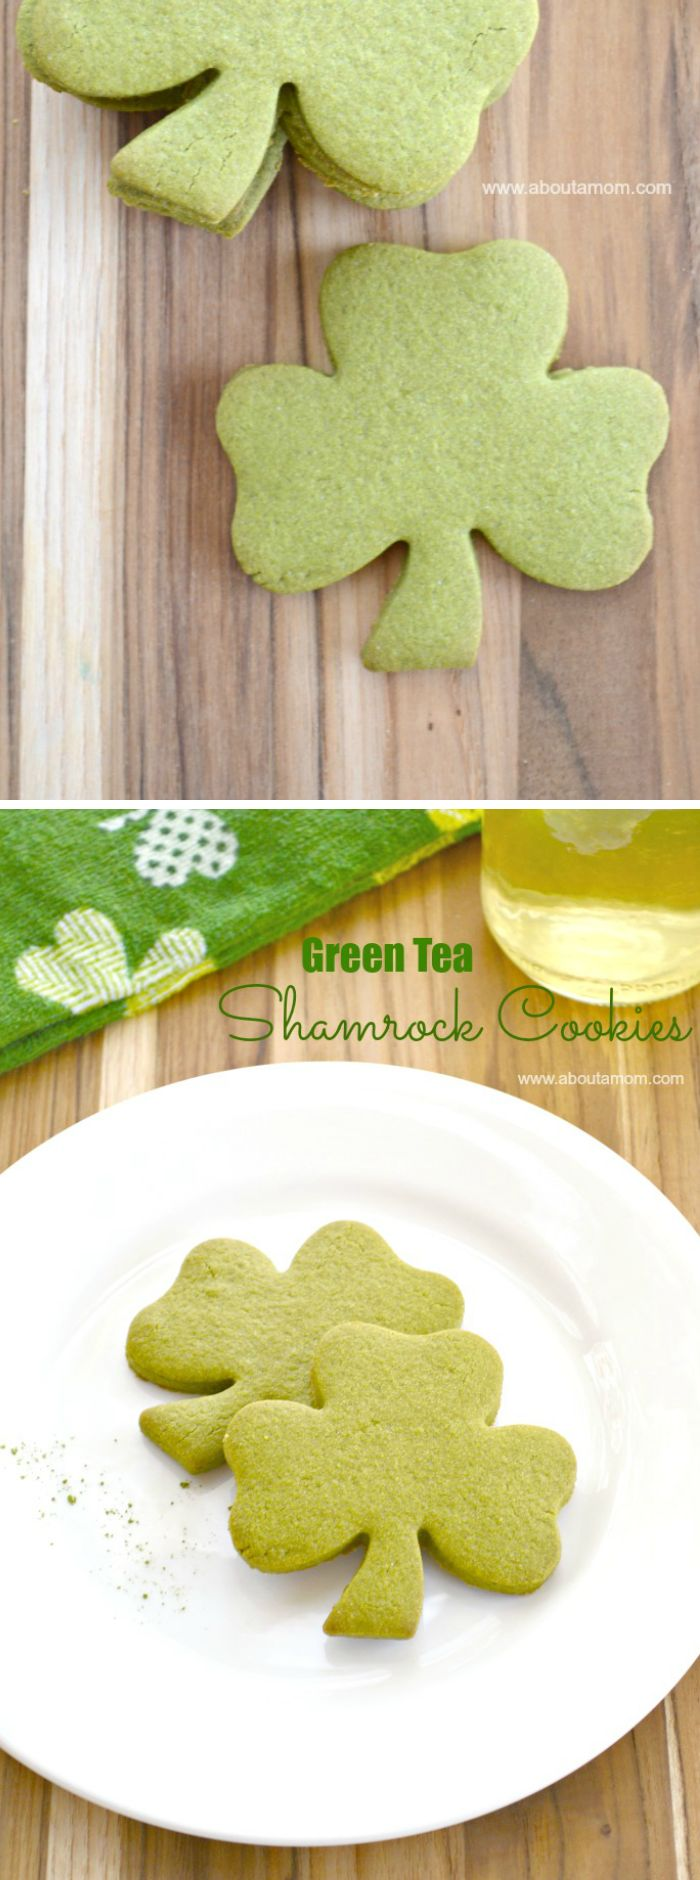 Matcha green tea powder gives Green Tea Shamrock Cookies their beautiful green color. Loaded with antioxidants, green tea is a healthy ingredient for St. Patrick's Day cookies.